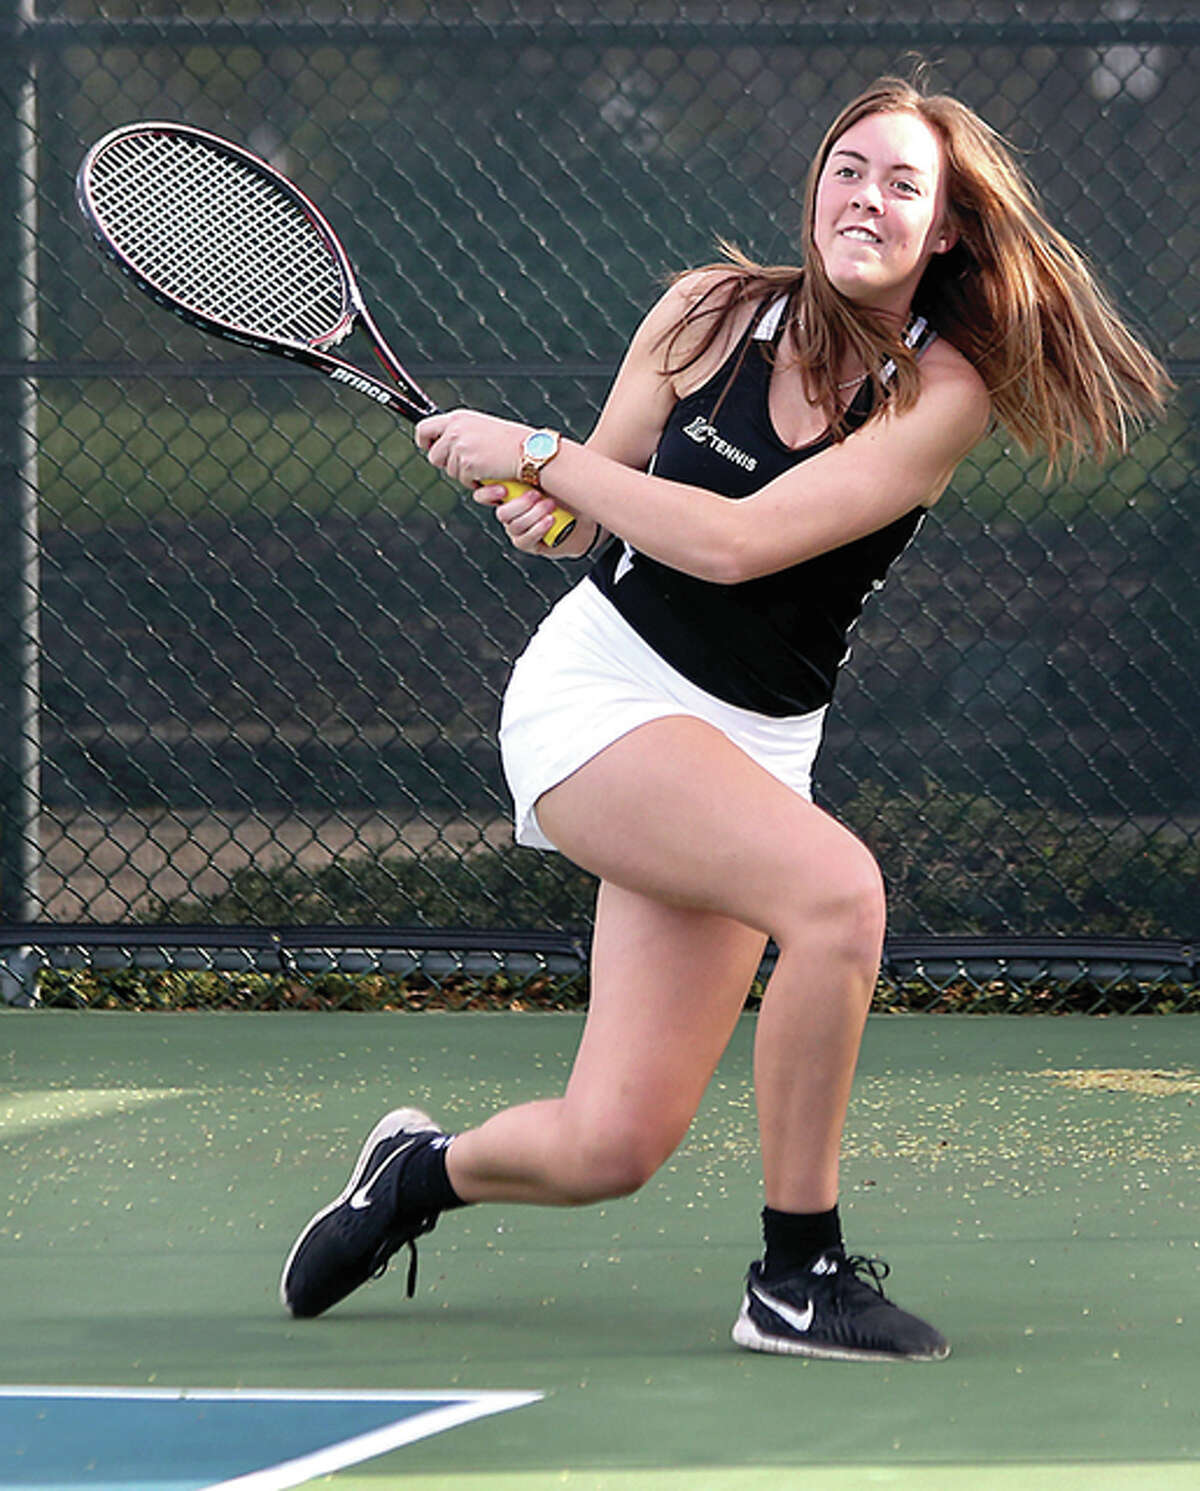 LCCC freshman Jane Greiser of Springfield, and doubles partner Maddie Swiecicki from Maryville made it to Wednesday's consolation semifinal round at the NJCAA Women's National Tennis Championships in Tyler, Texas.